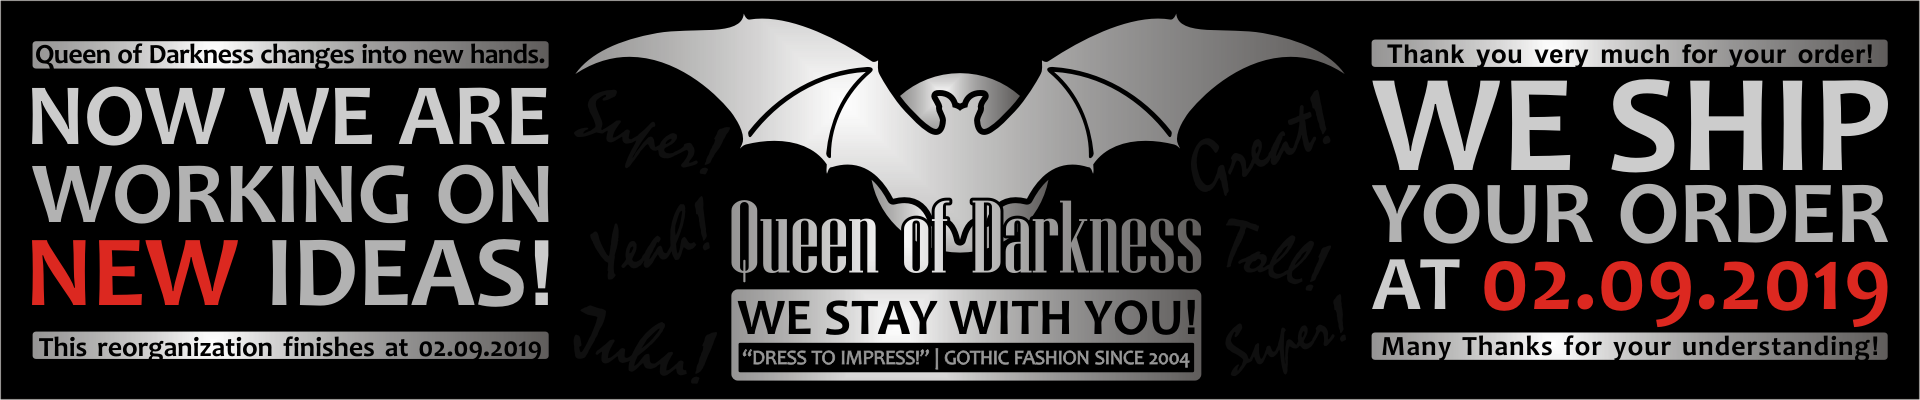 Queen of Darkness Gothic Fashion - Dress to impress! - Gothic Fashion since 2004